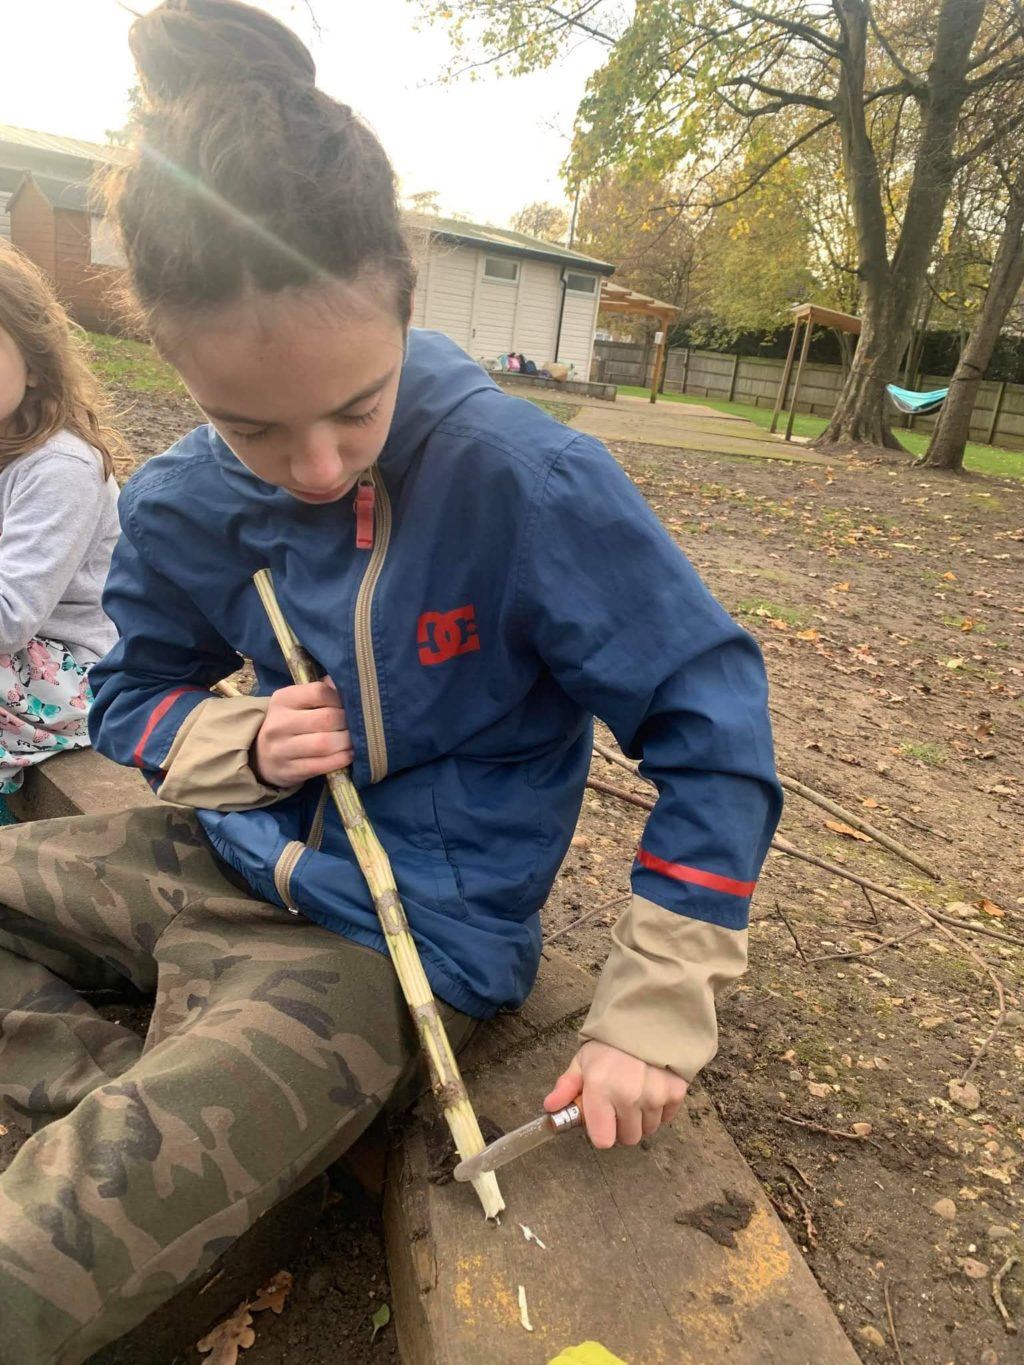 Child whittling wood outdoors